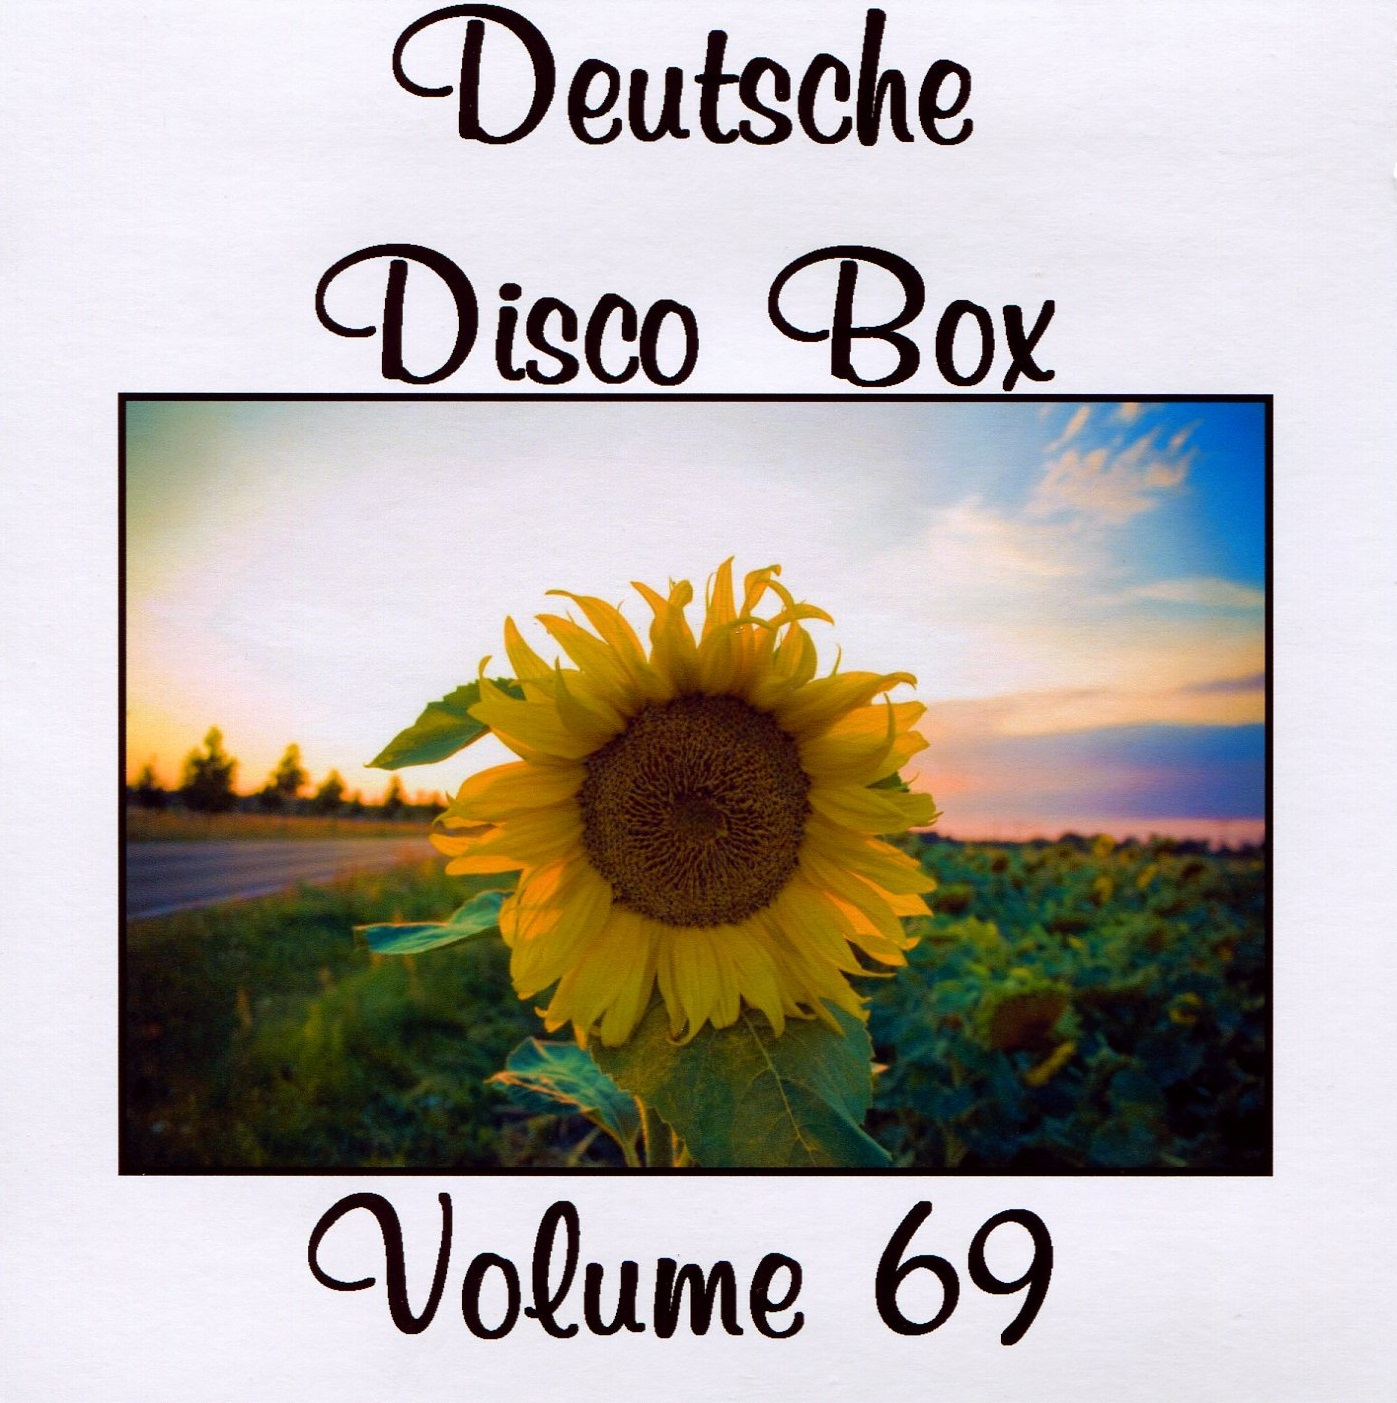 : Ruhrpott Records - Deutsche Disco Box 69